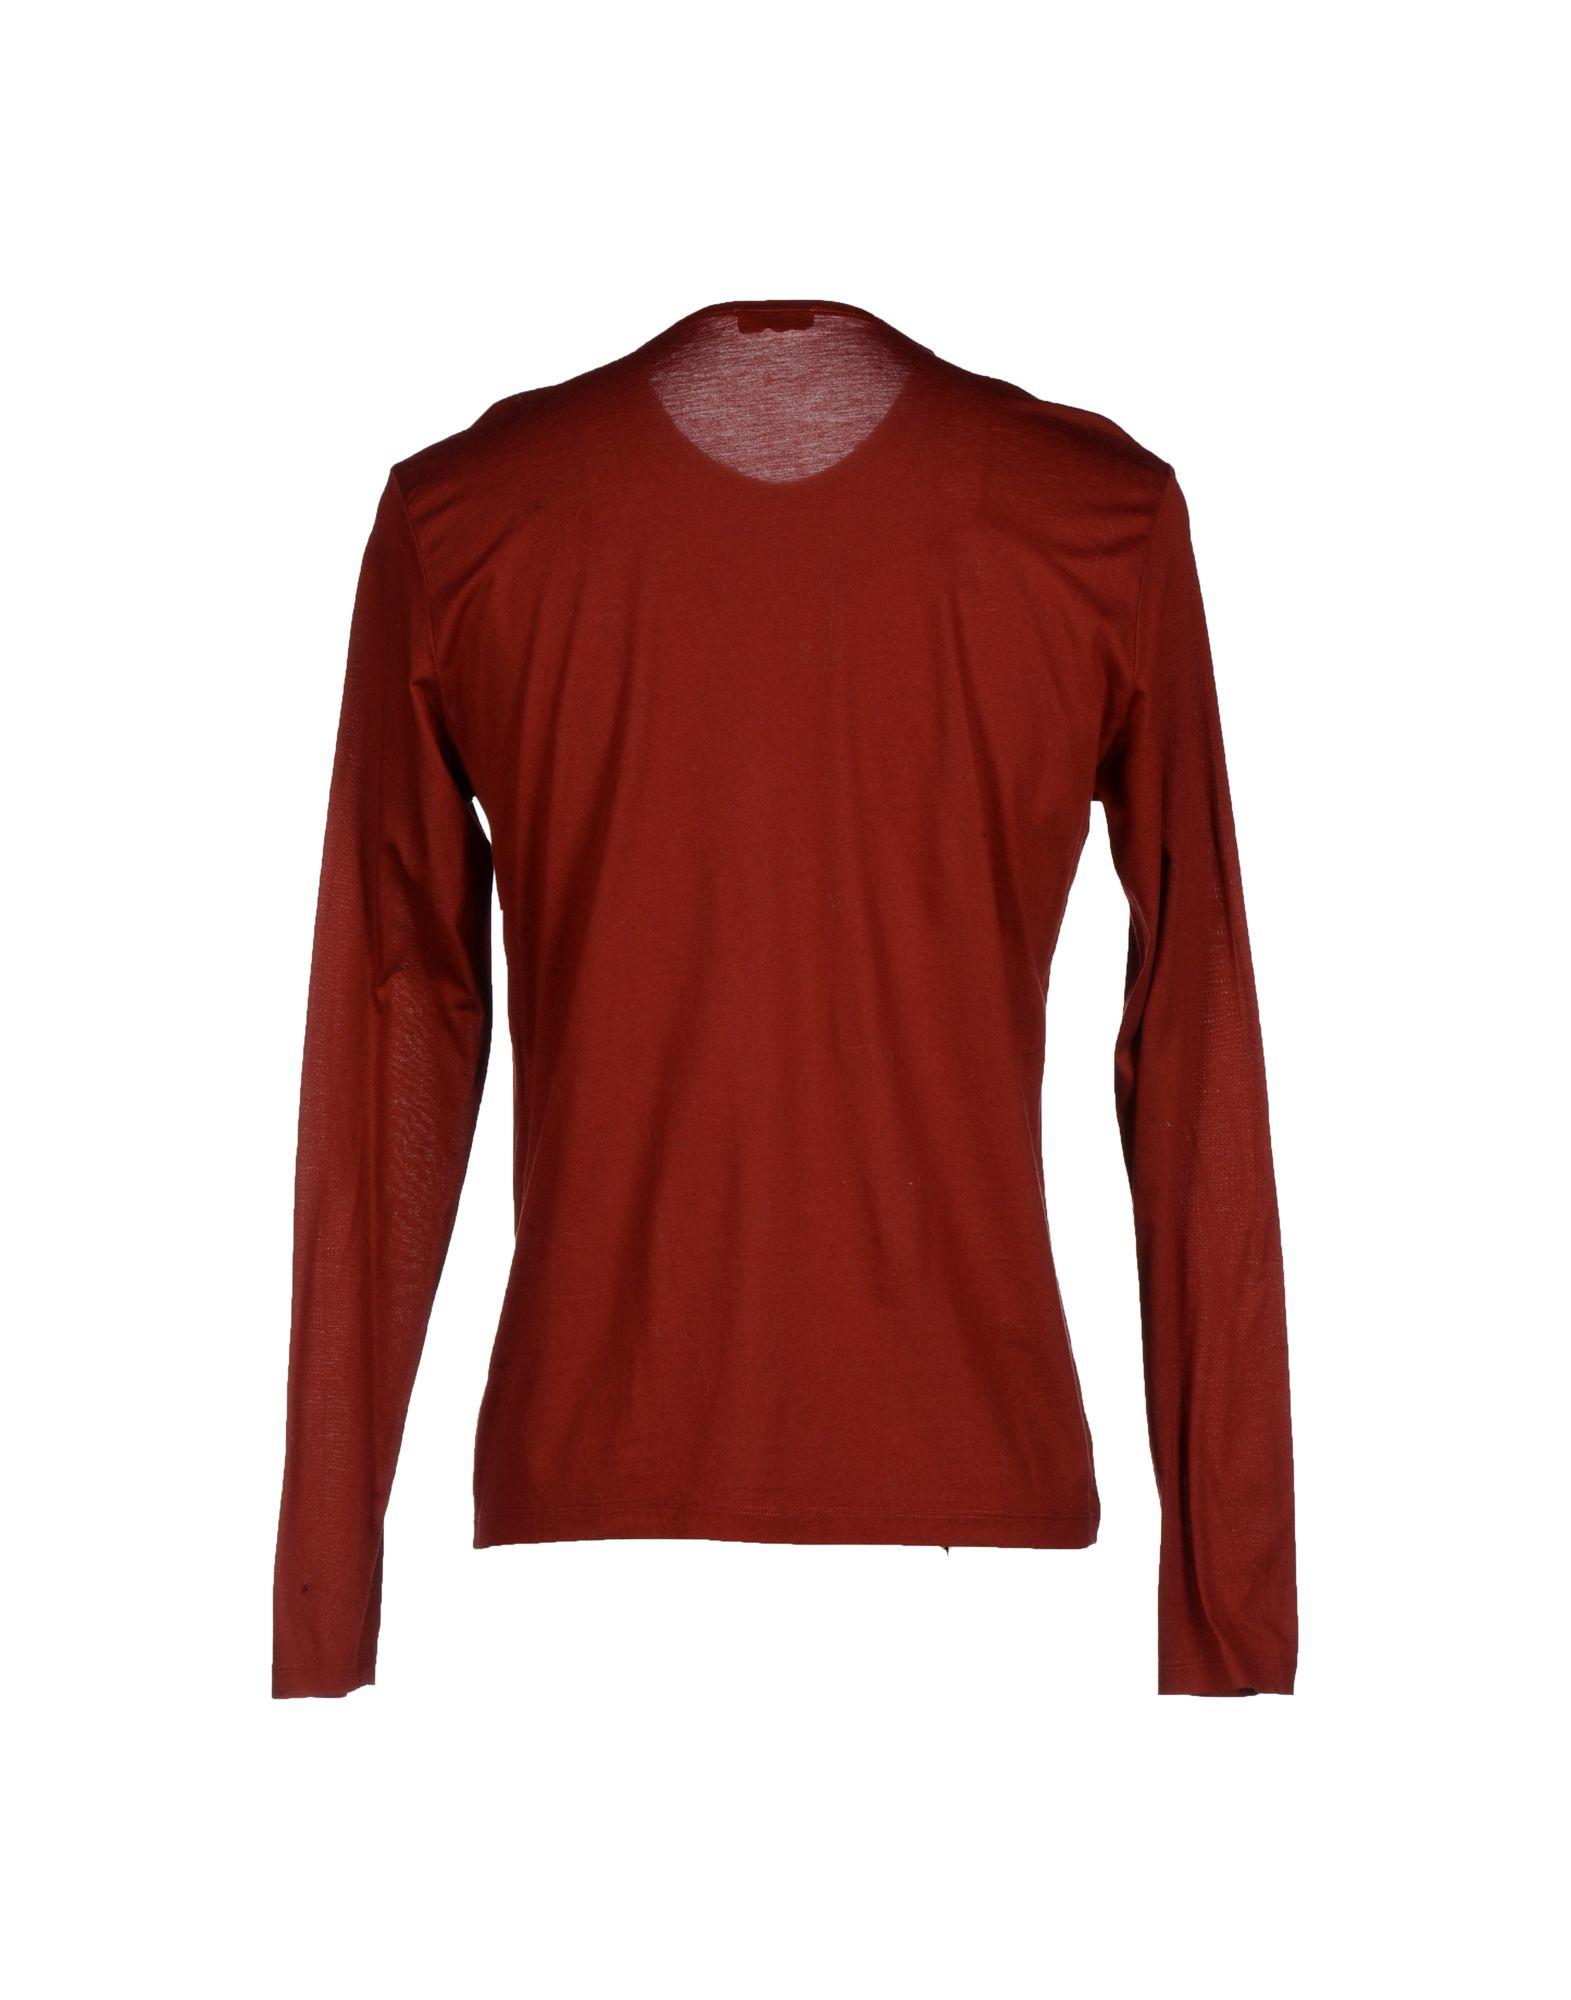 Balenciaga T Shirt In Red For Men Lyst